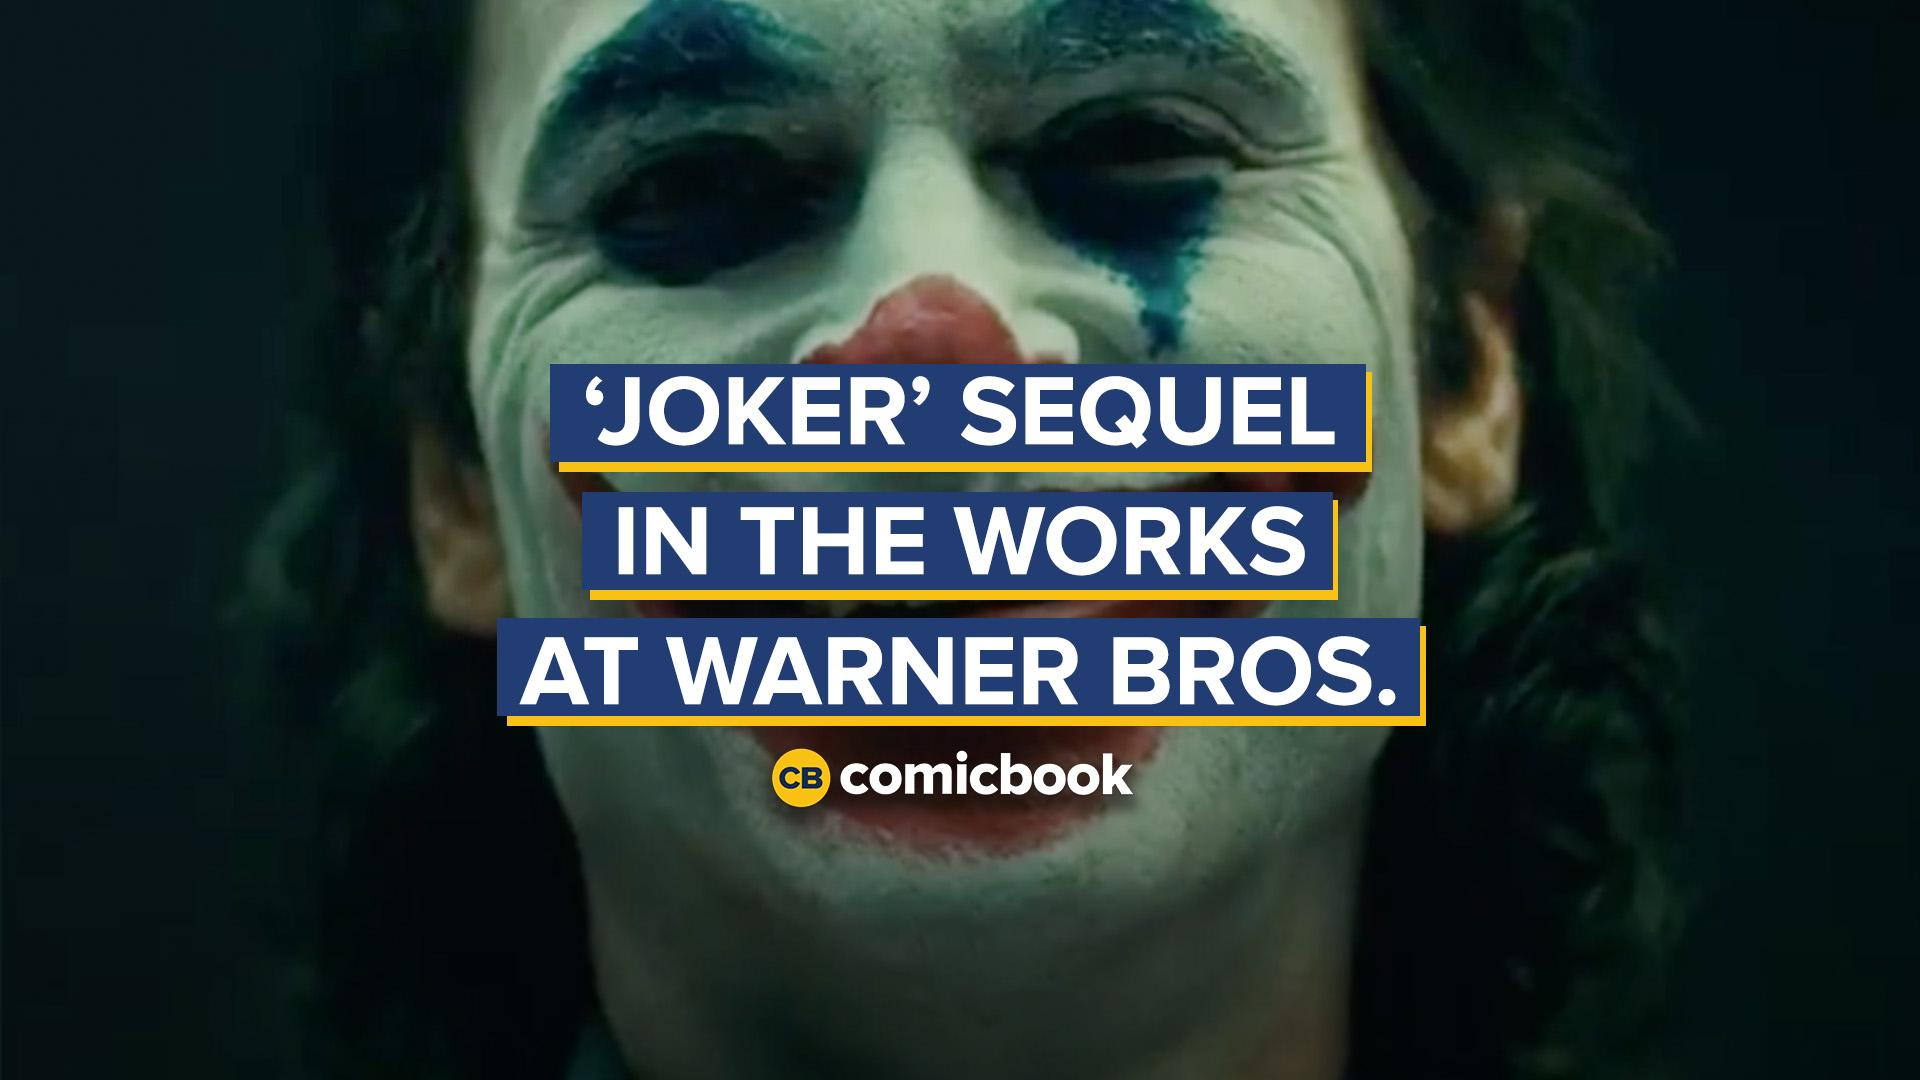 JOKER Sequel in the Works at Warner Bros. With Todd Phillips screen capture